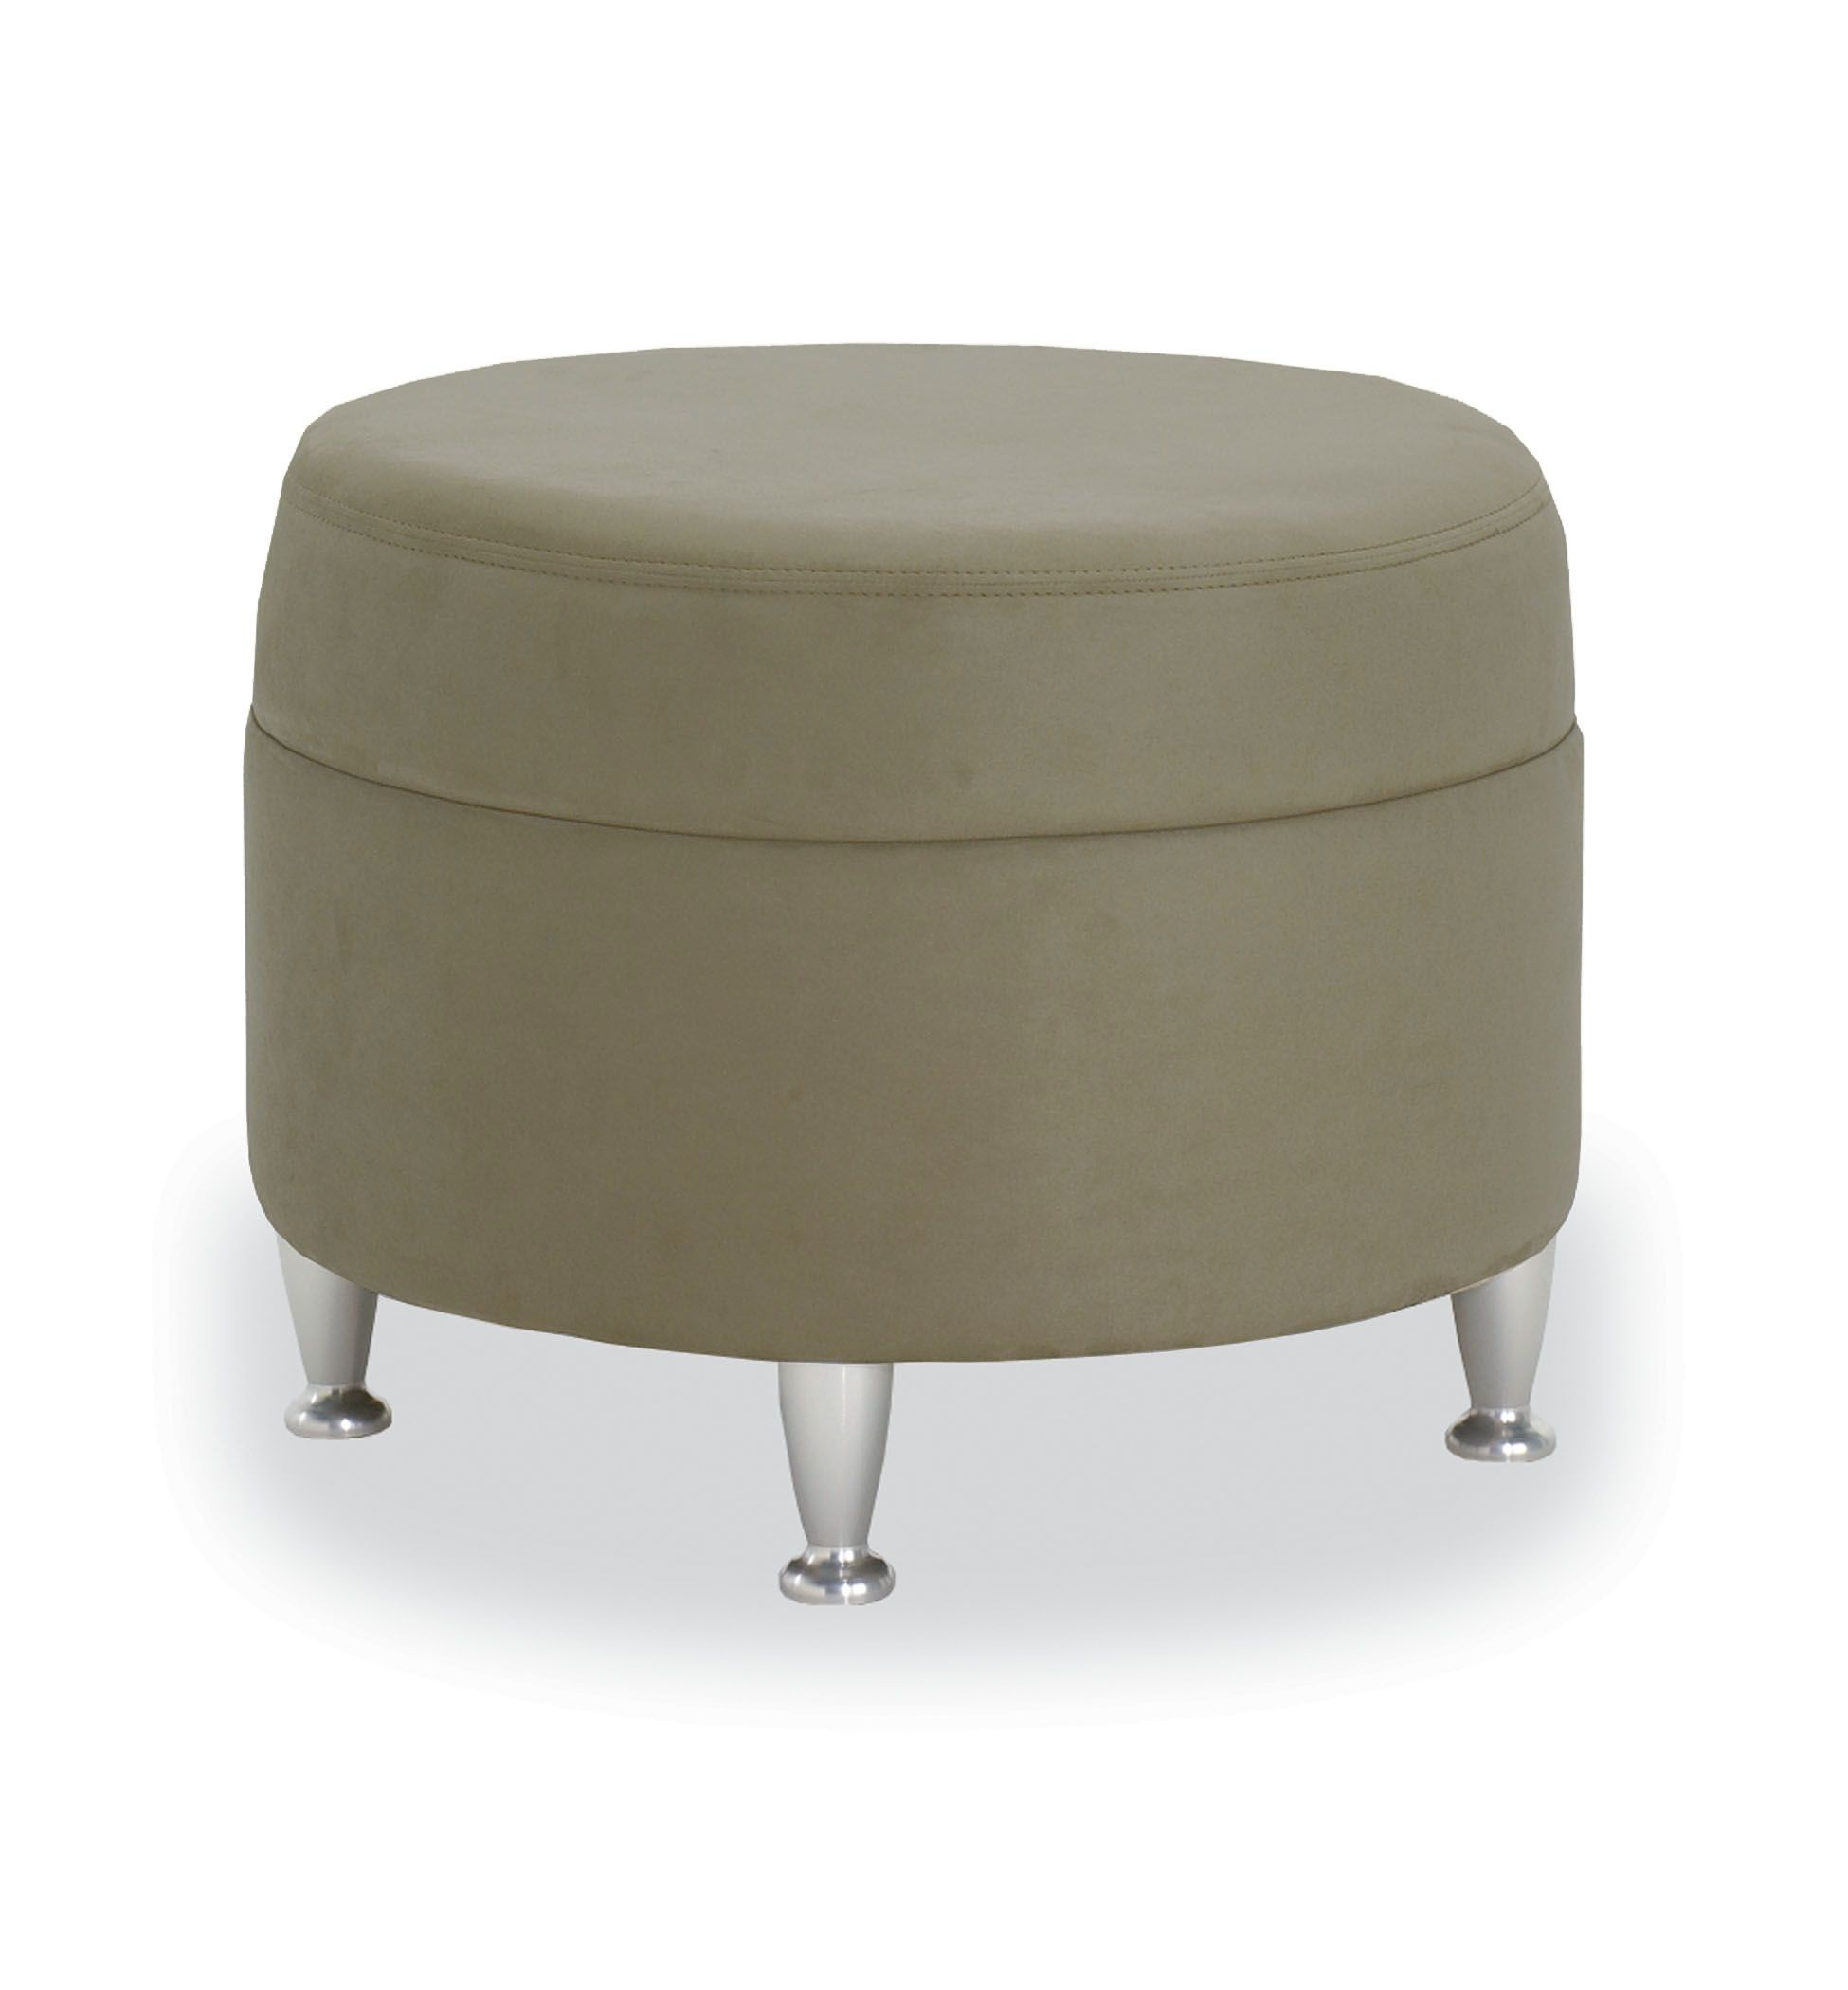 Miraculous The Facet Round Ottoman The Lounge Collection Furniture Uwap Interior Chair Design Uwaporg